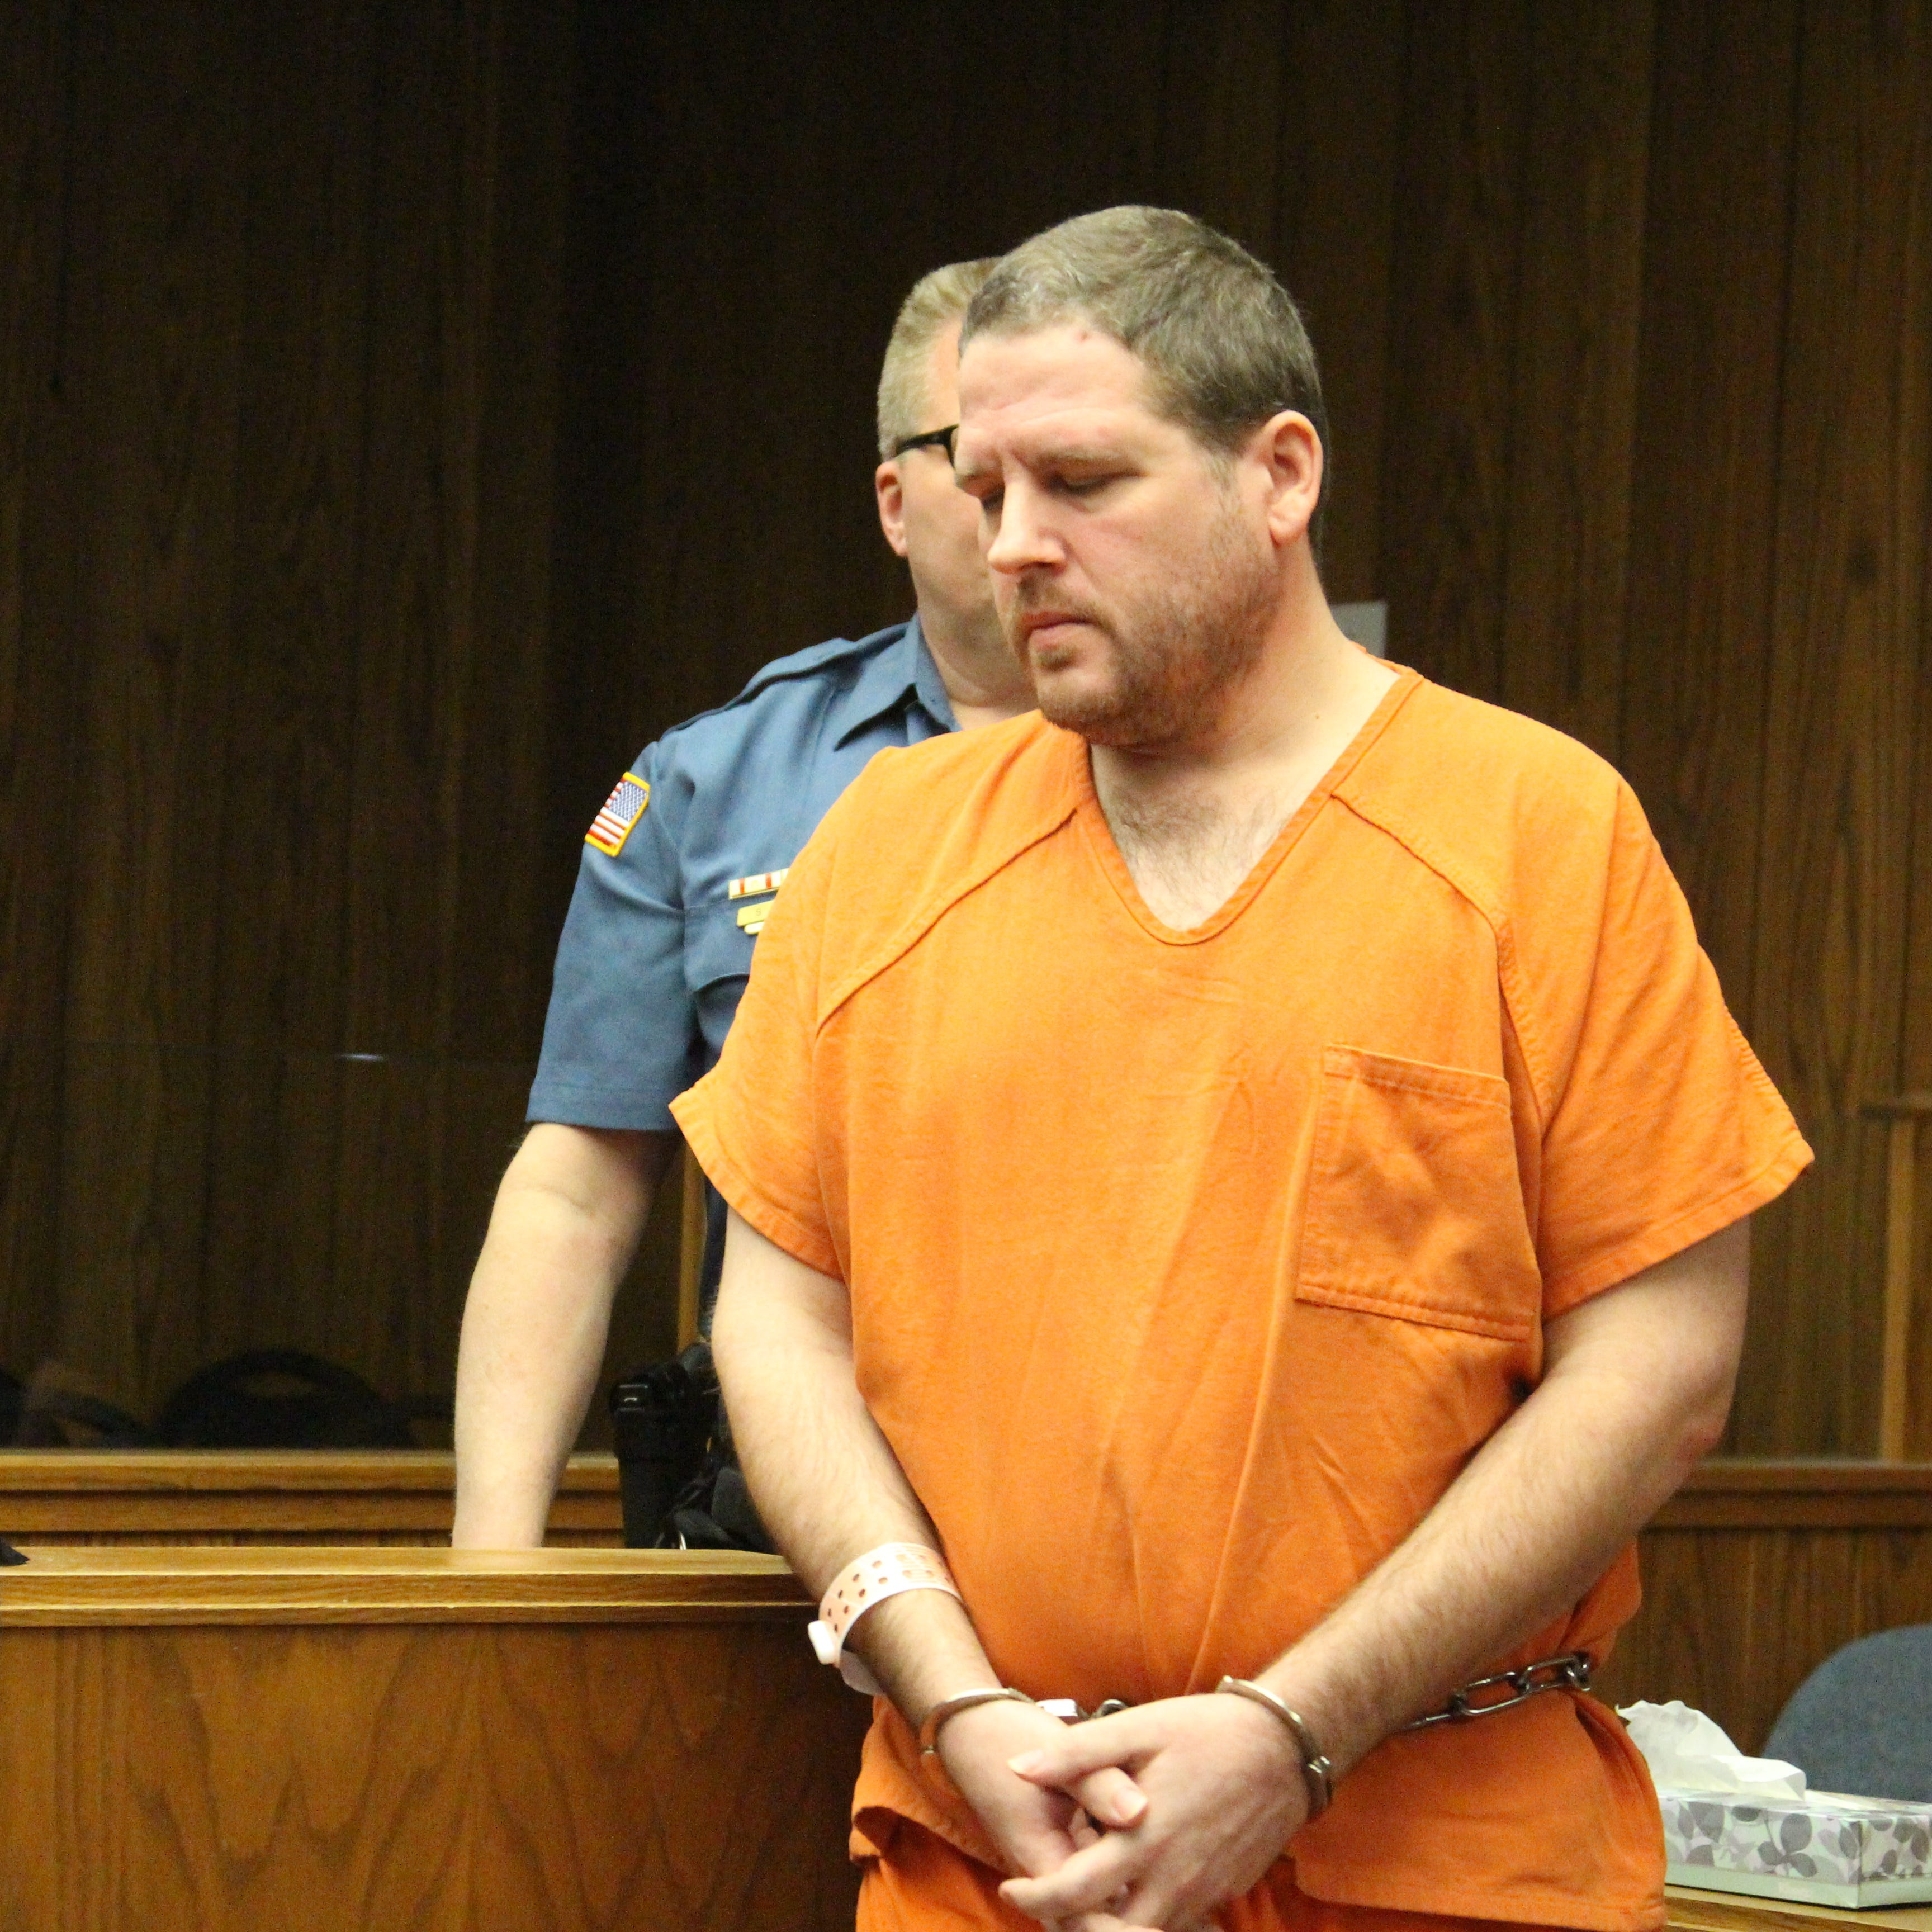 Marion child rapist will spend life in prison for rape of 4-year-old